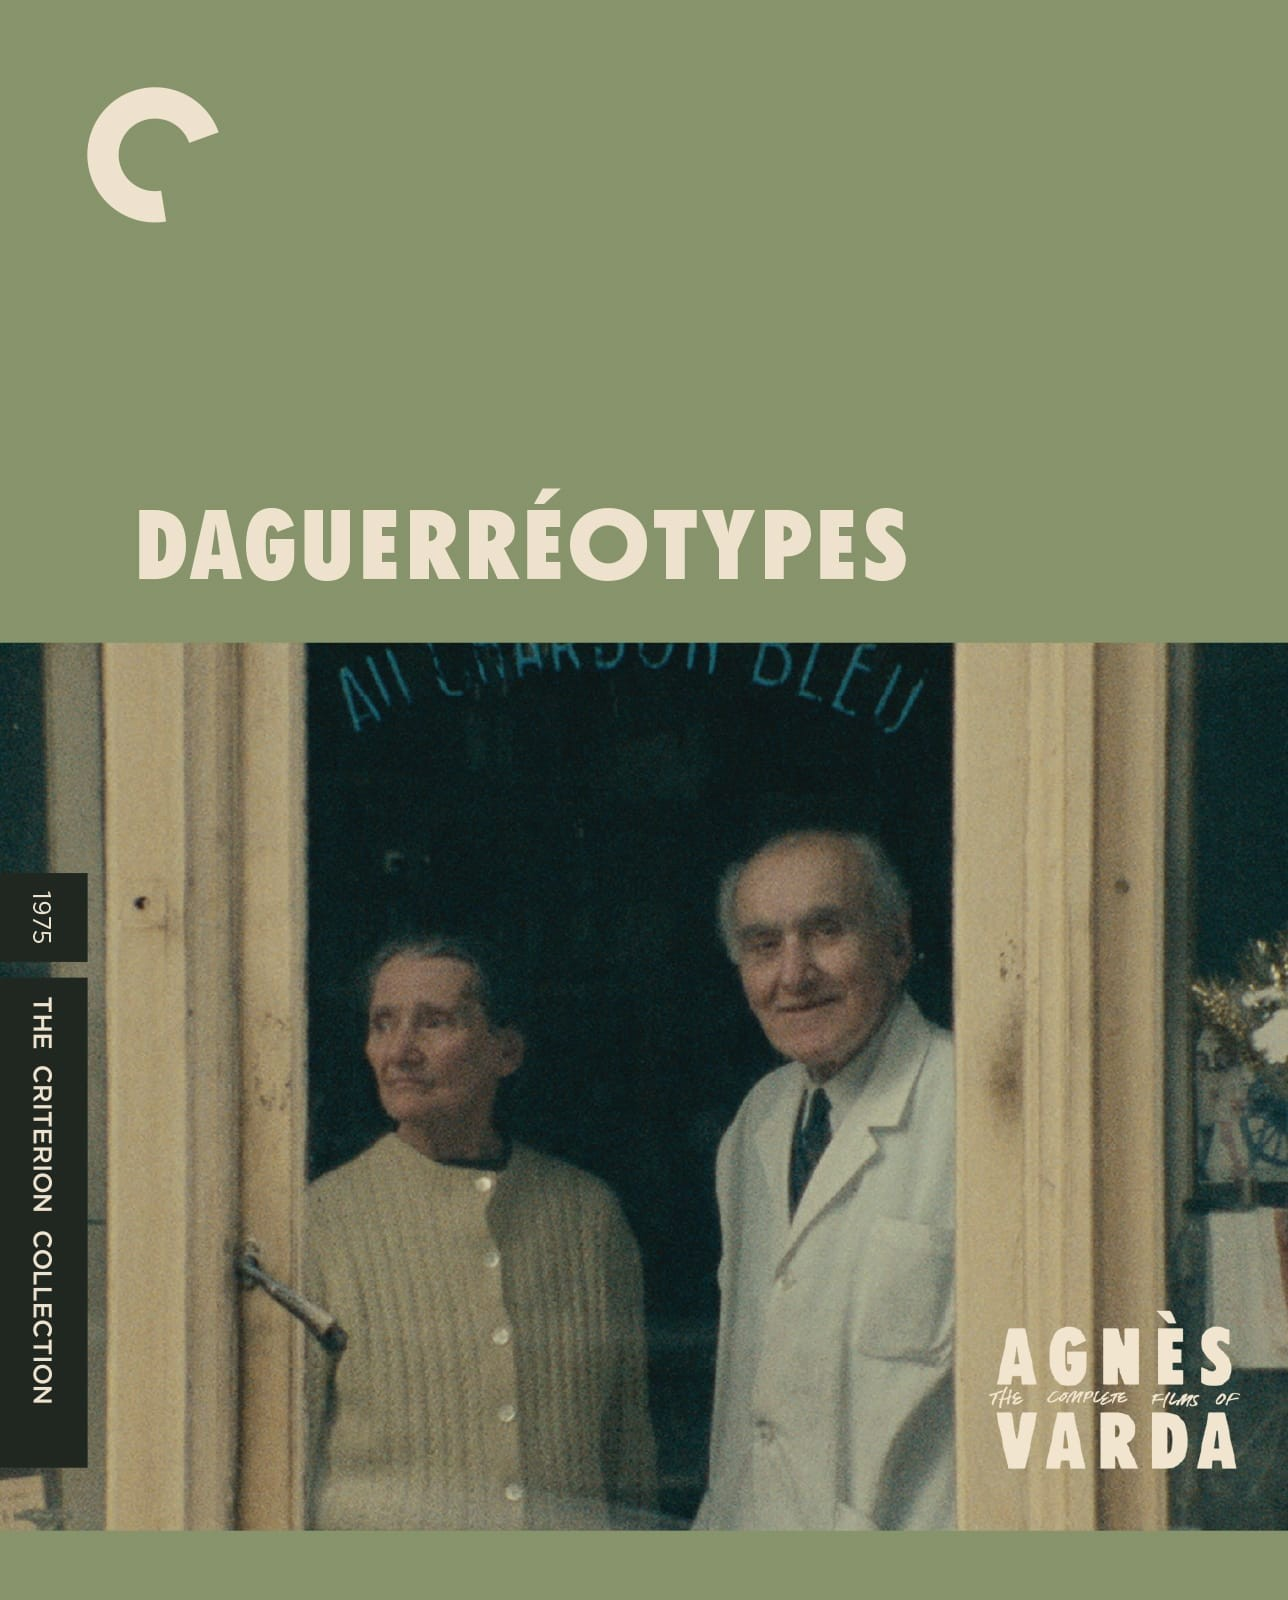 Daguerréotypes (1975) | The Criterion Collection